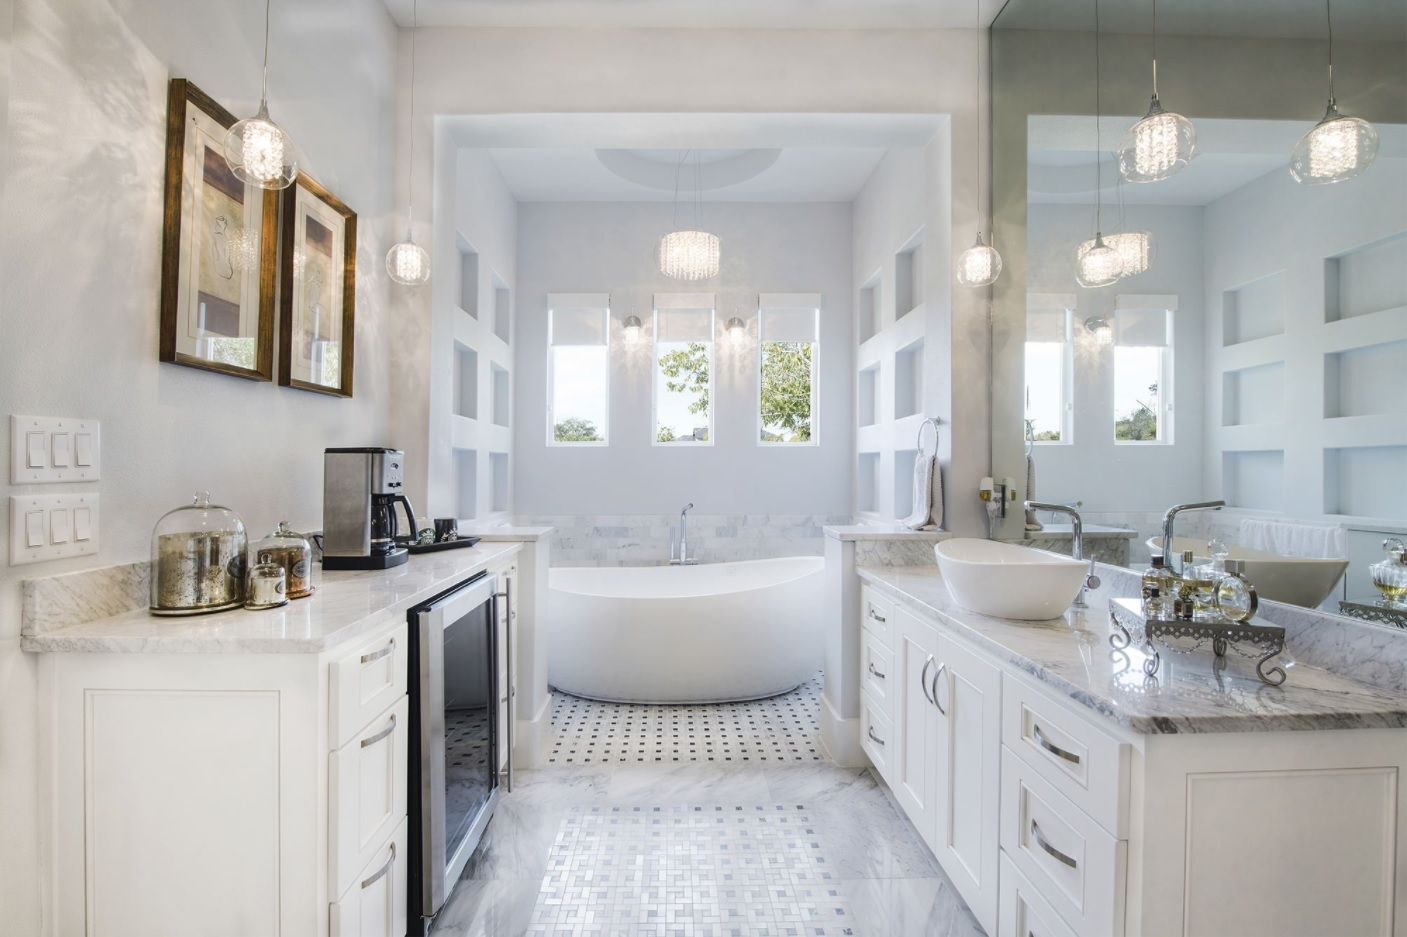 Fully equipped master bathroom in white color theme